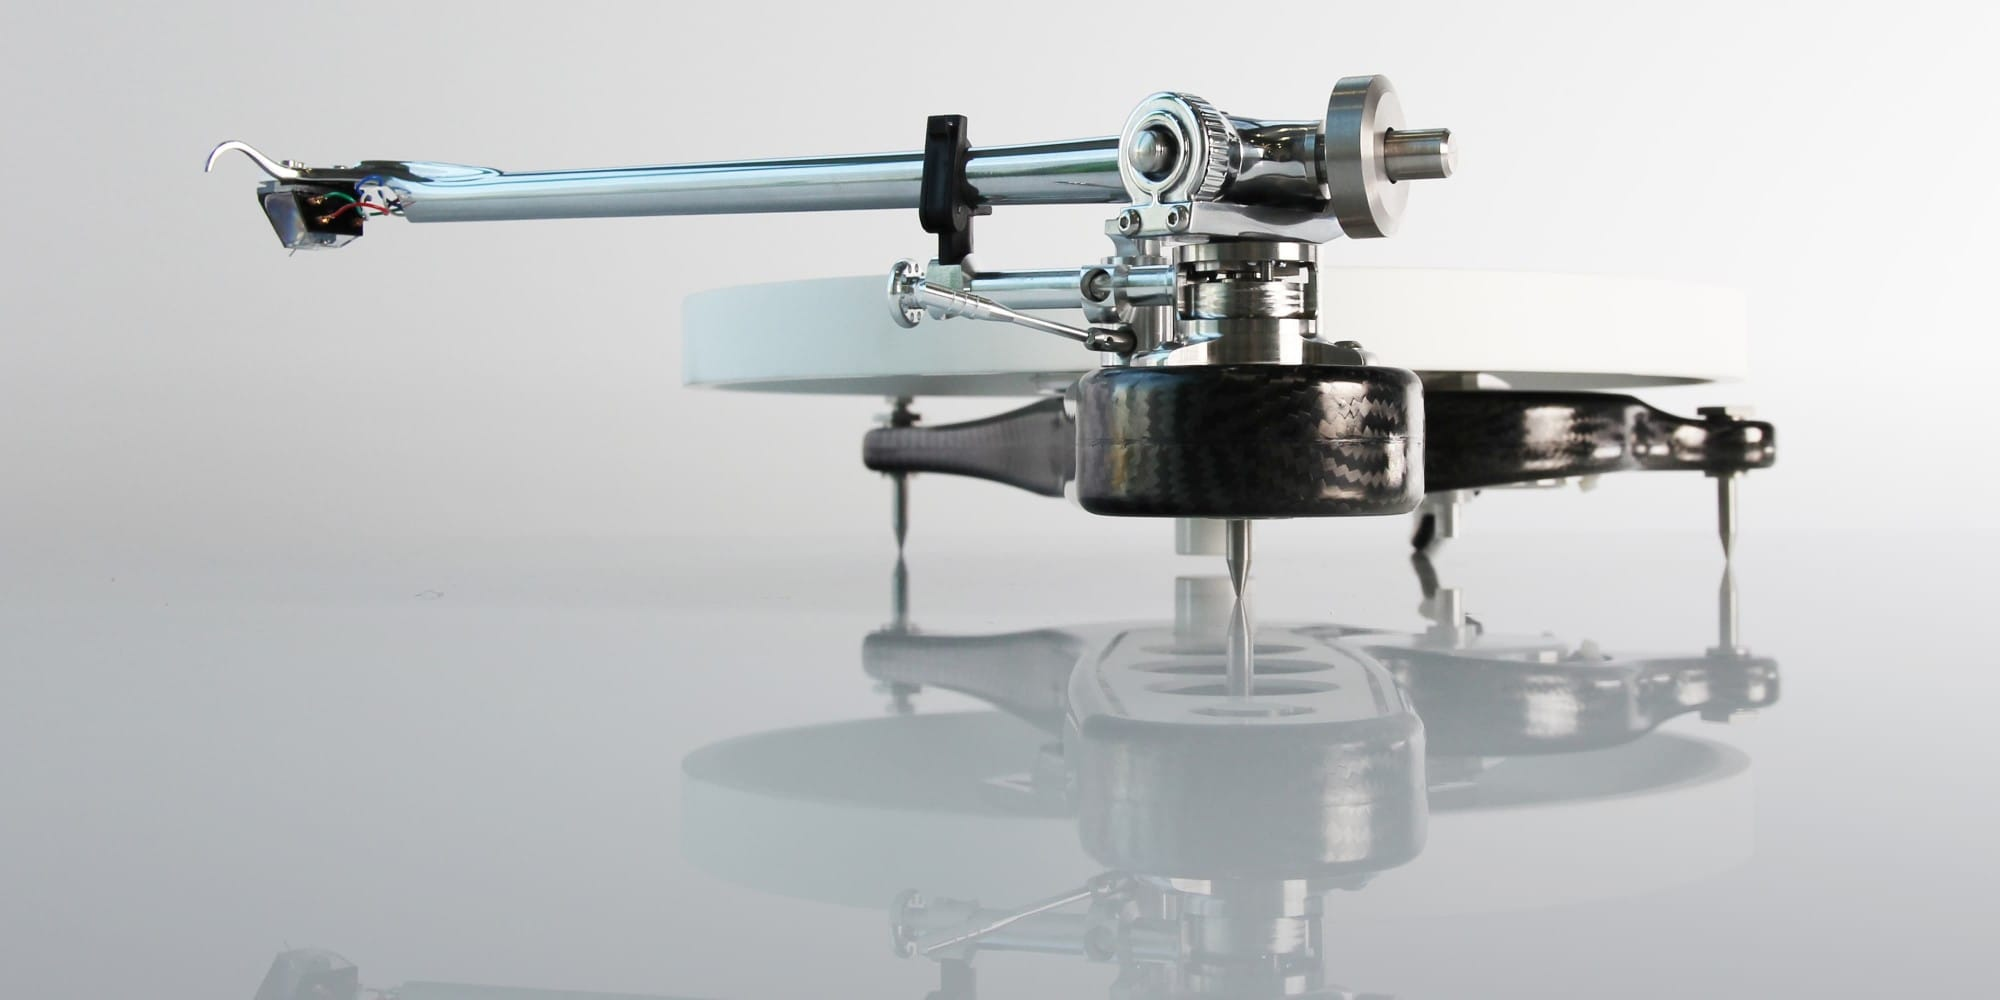 A side-view of Rega's Naiad turntable.